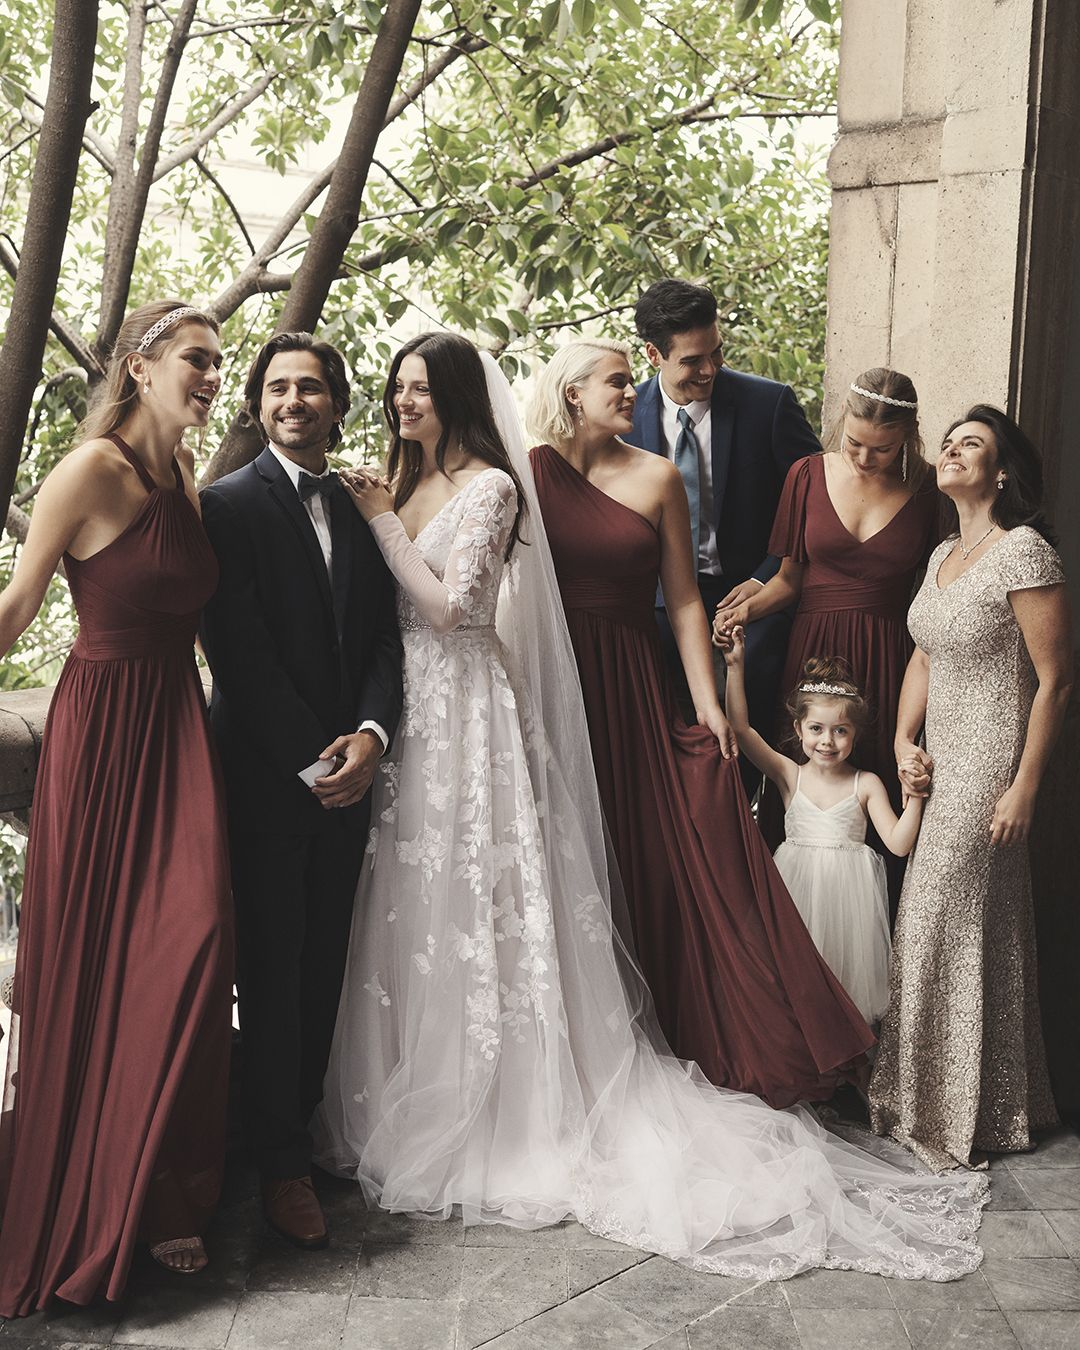 Burgundy Wedding Goals The Wine Bridesmaid Dresses Look Beautiful With The Long Sleeve Lace Weddi Wine Bridesmaid Dresses Wedding Dresses Plus Wedding Dresses [ 1350 x 1080 Pixel ]